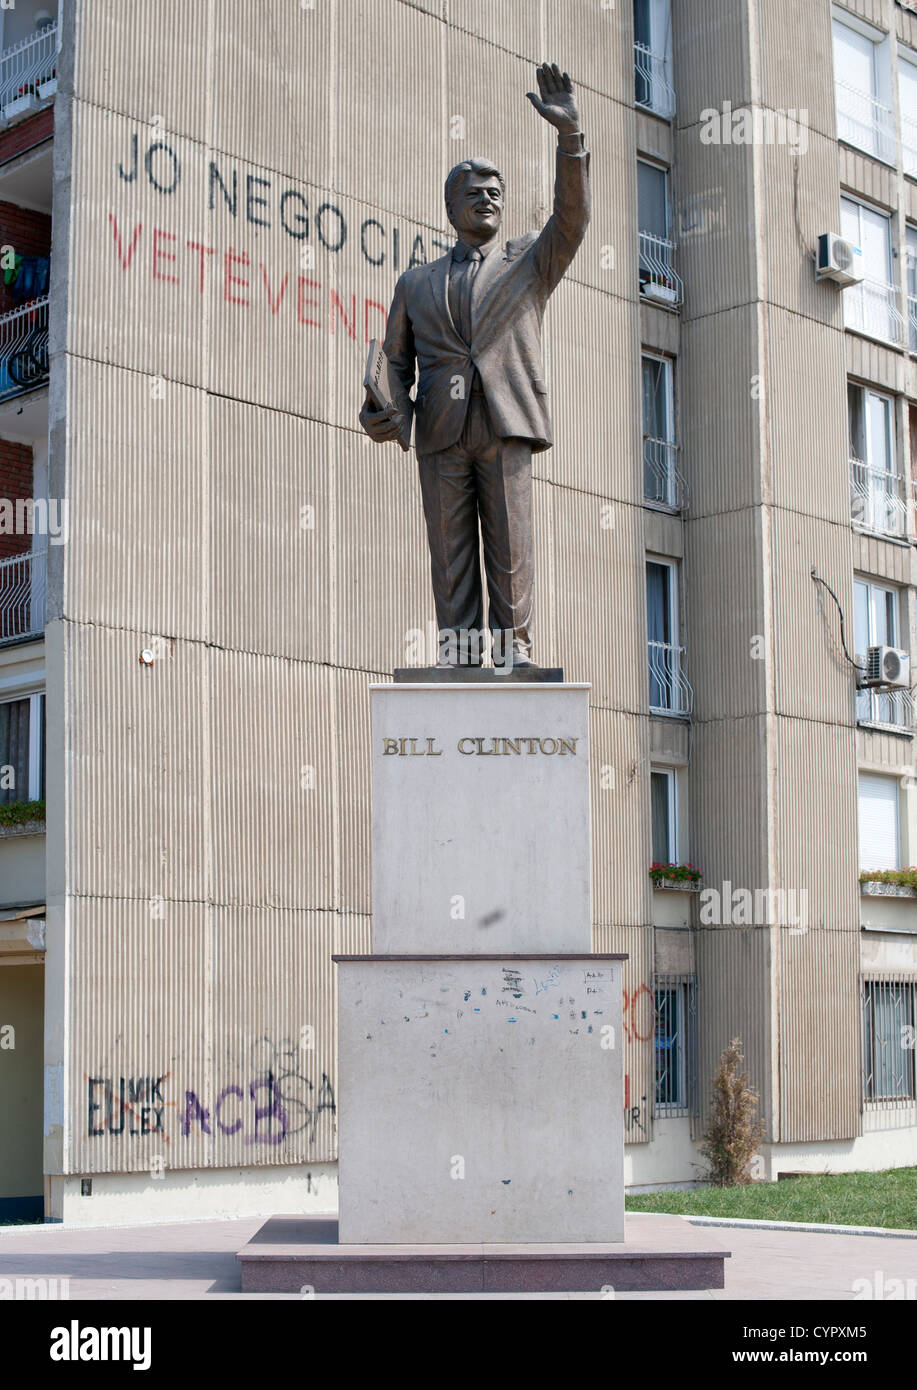 Statue of Bill Clinton in Pristina, the capital of the Republic of Kosovo. - Stock Image